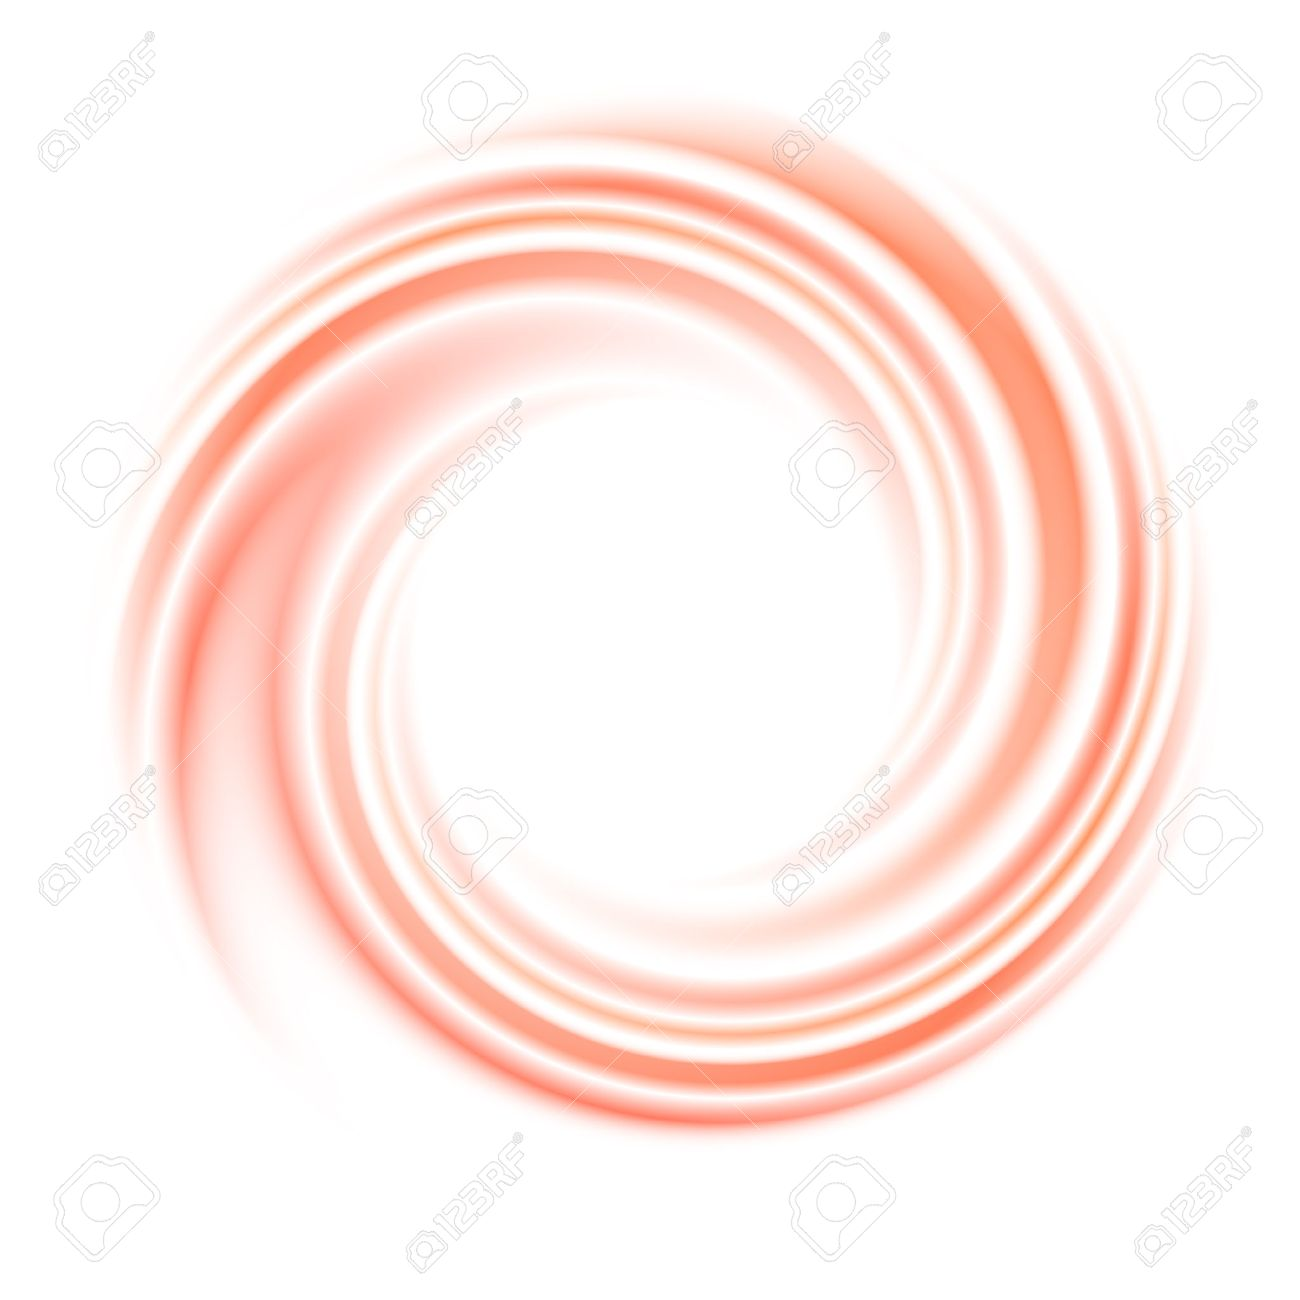 1300x1300 Abstract Circle Swirl Background. Round Curve, Motion Light